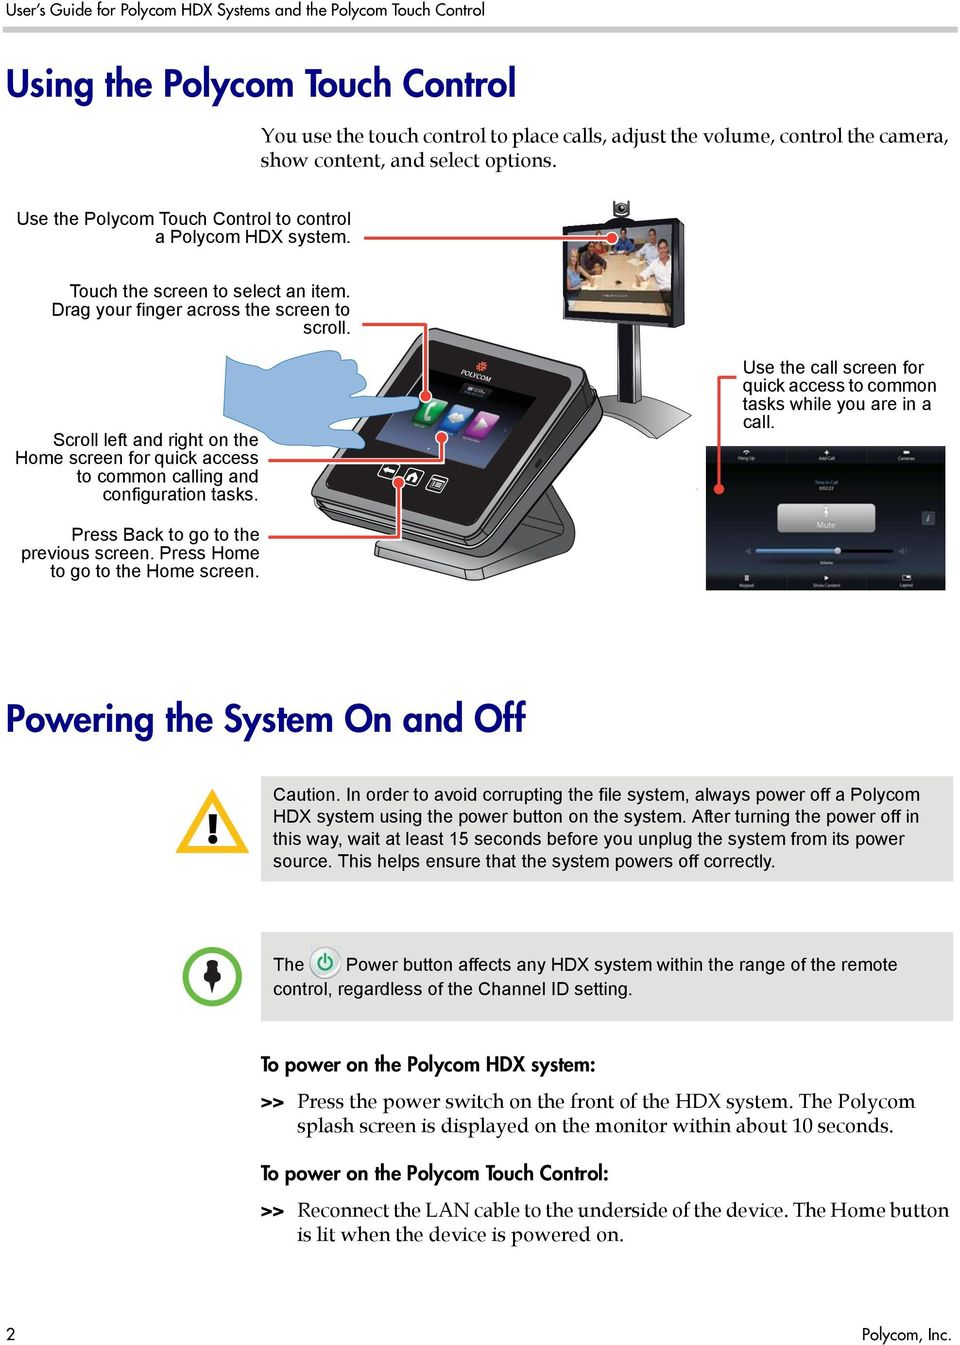 User s Guide for Polycom HDX Systems and the Polycom Touch